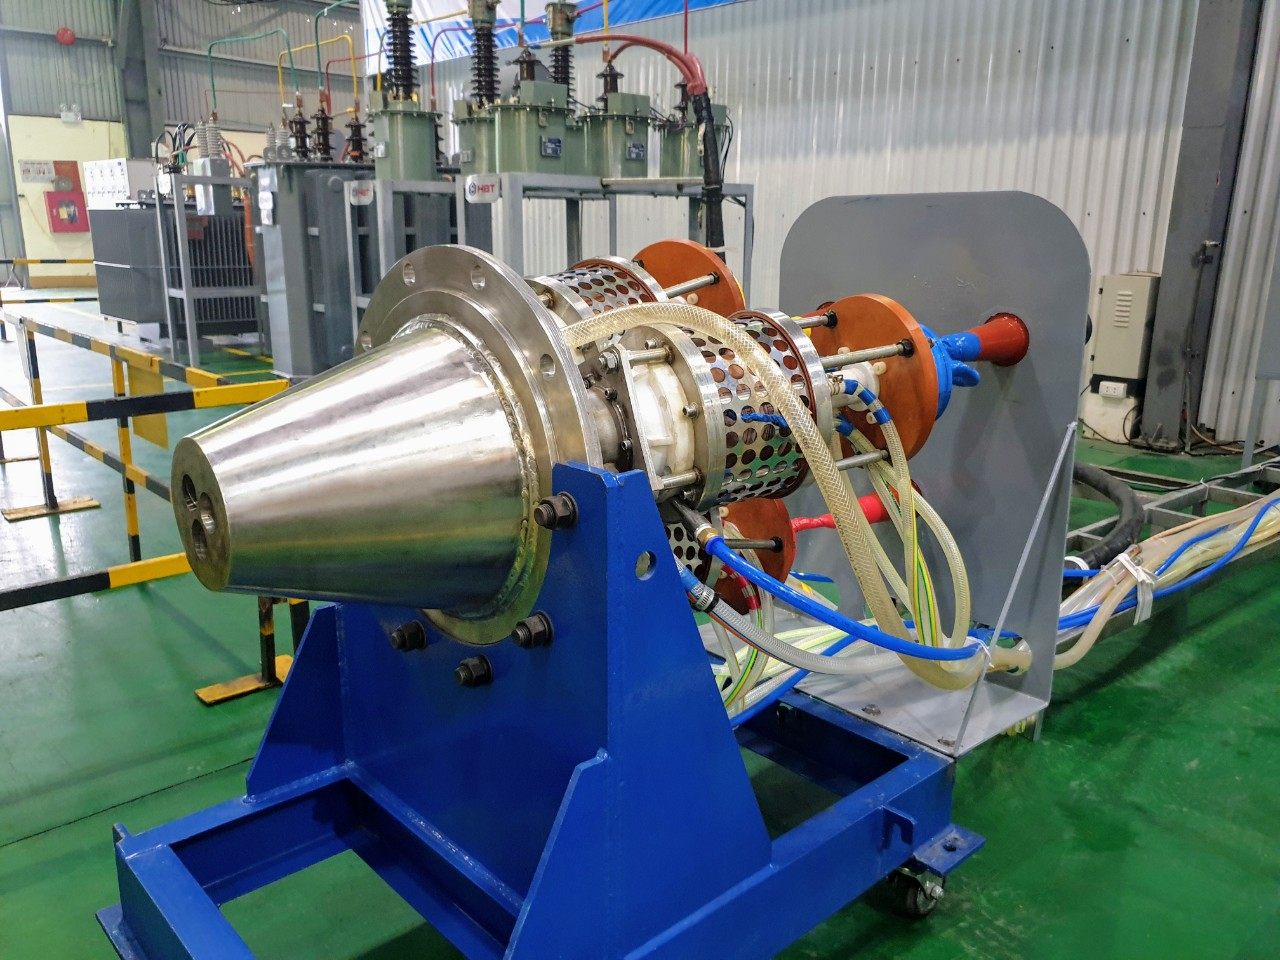 VinIT Institute of Technology continues to test high-capacity Thermal Plasma generator